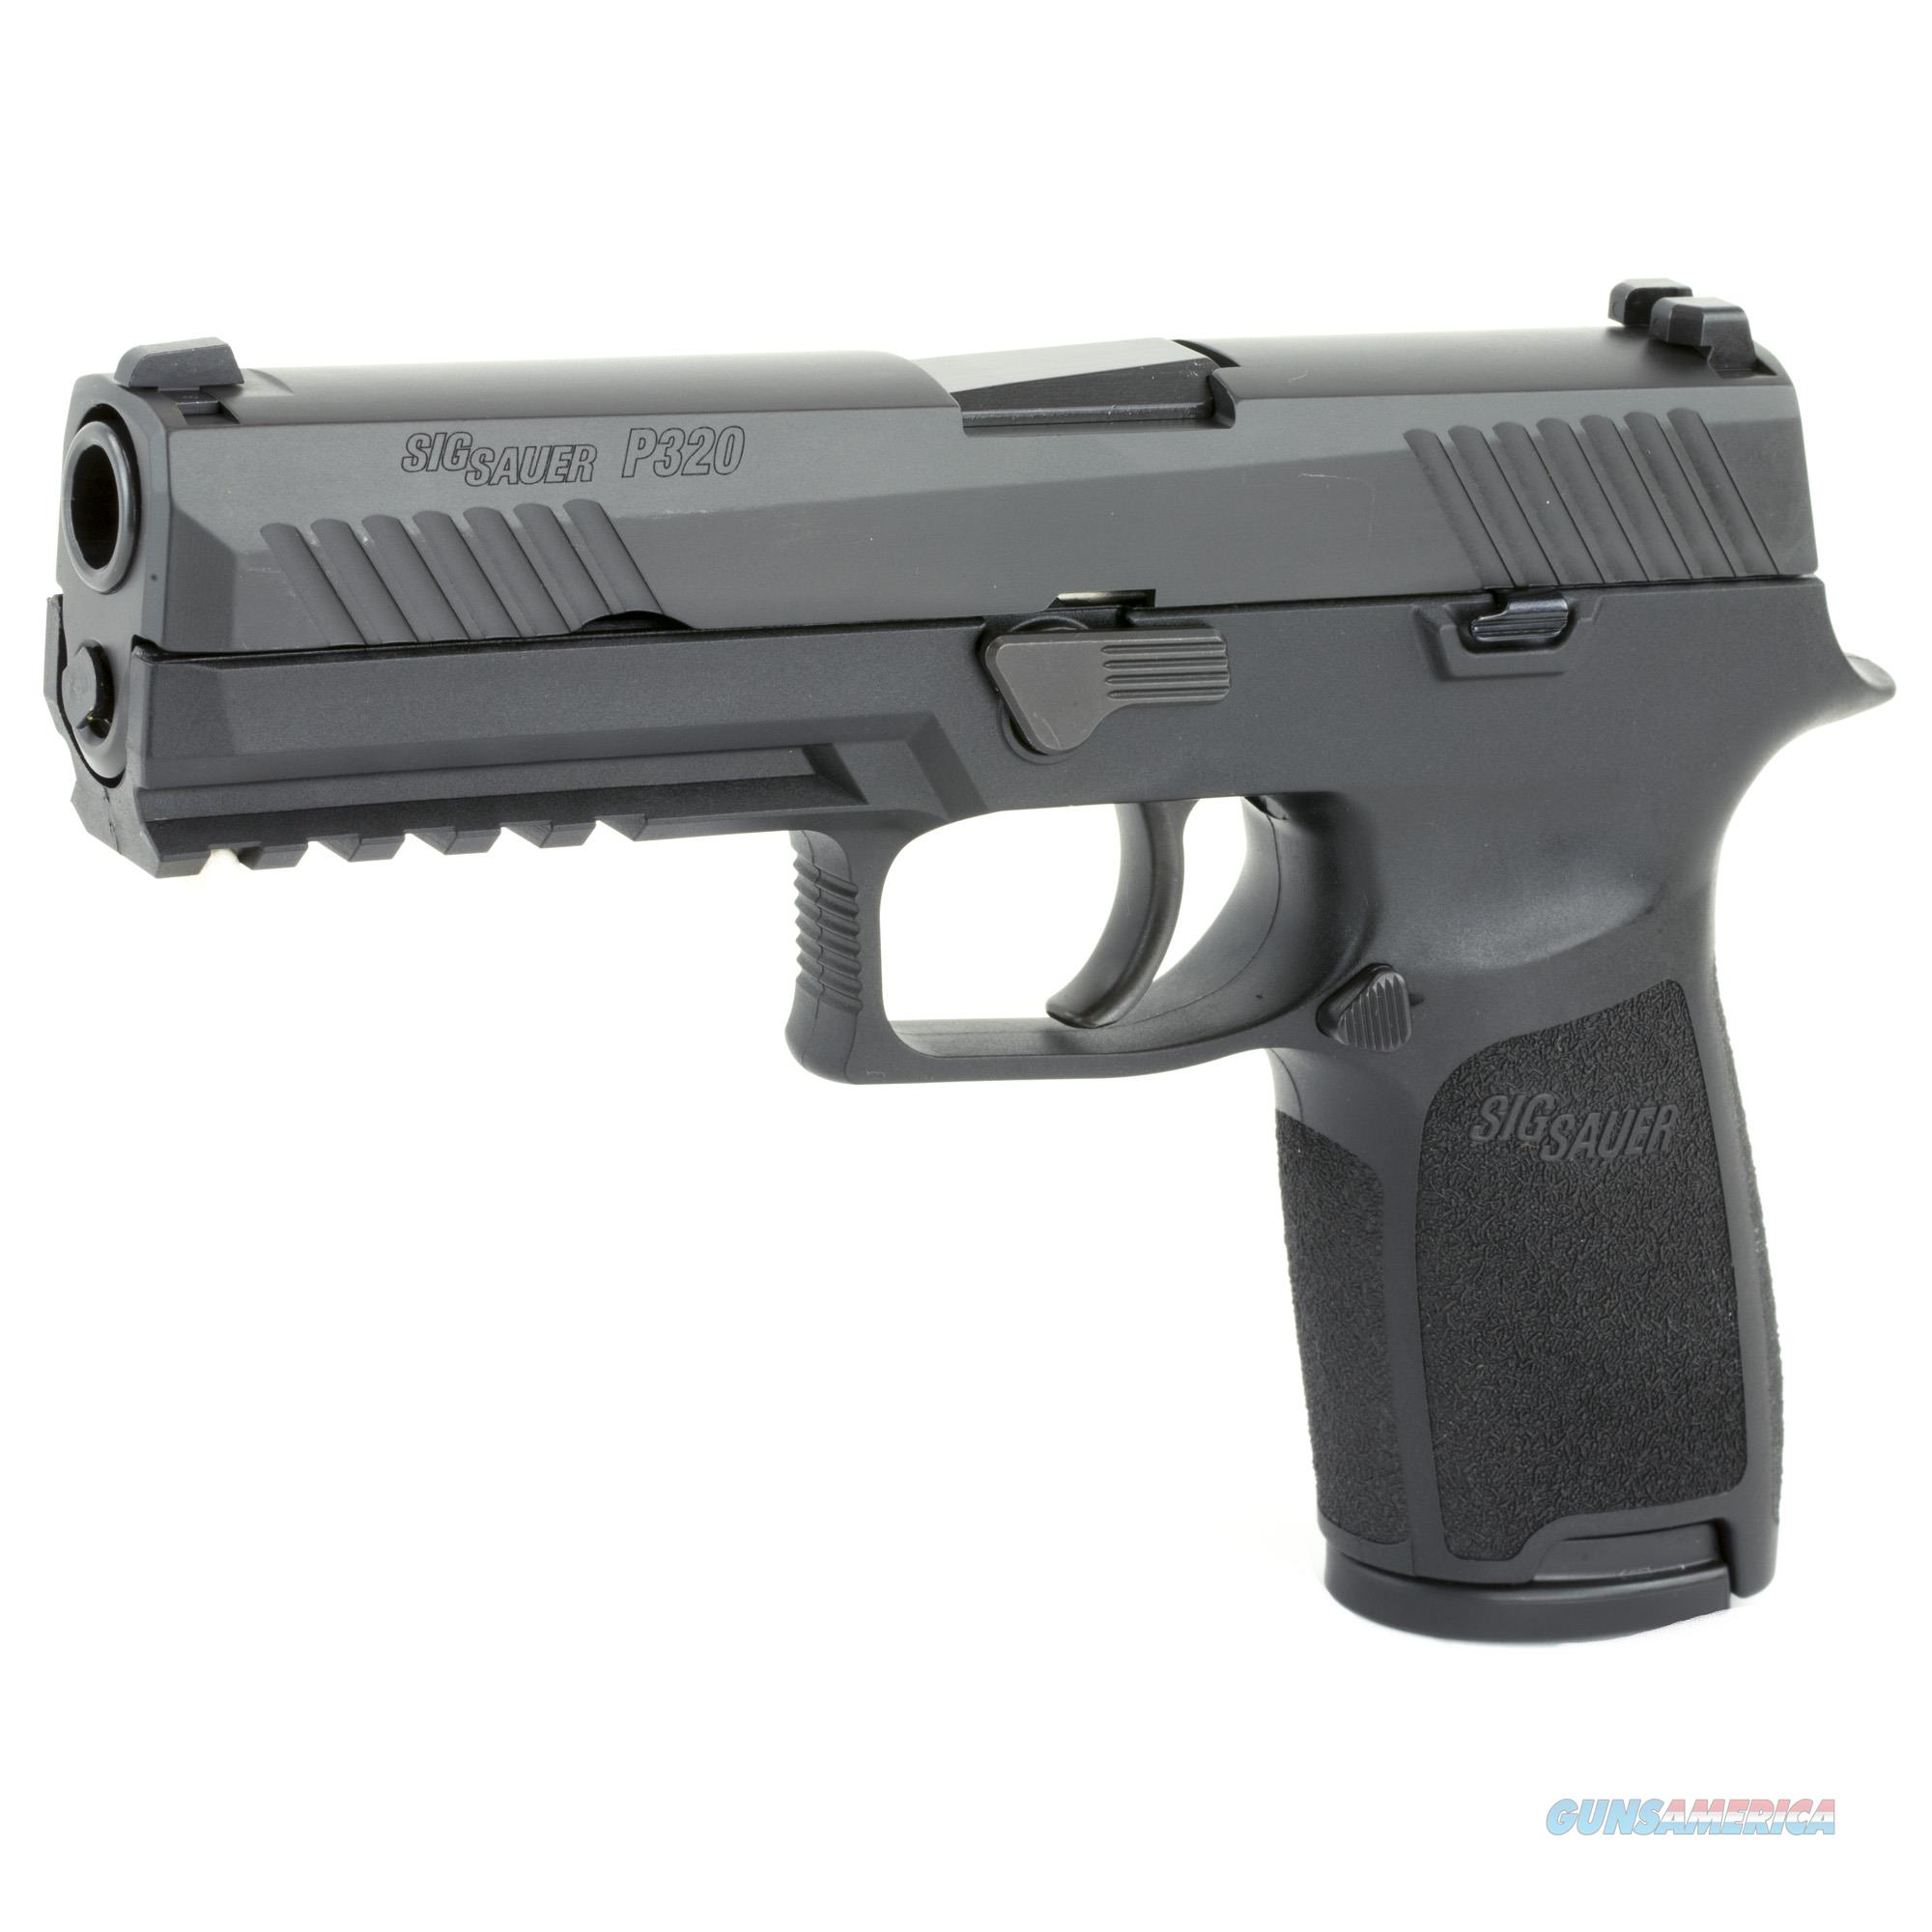 "Sig Sauer P320 Full Size.45 ACP 4.7"" 10+1 Night Sights - New in Case  Guns > Pistols > Sig - Sauer/Sigarms Pistols > P320"